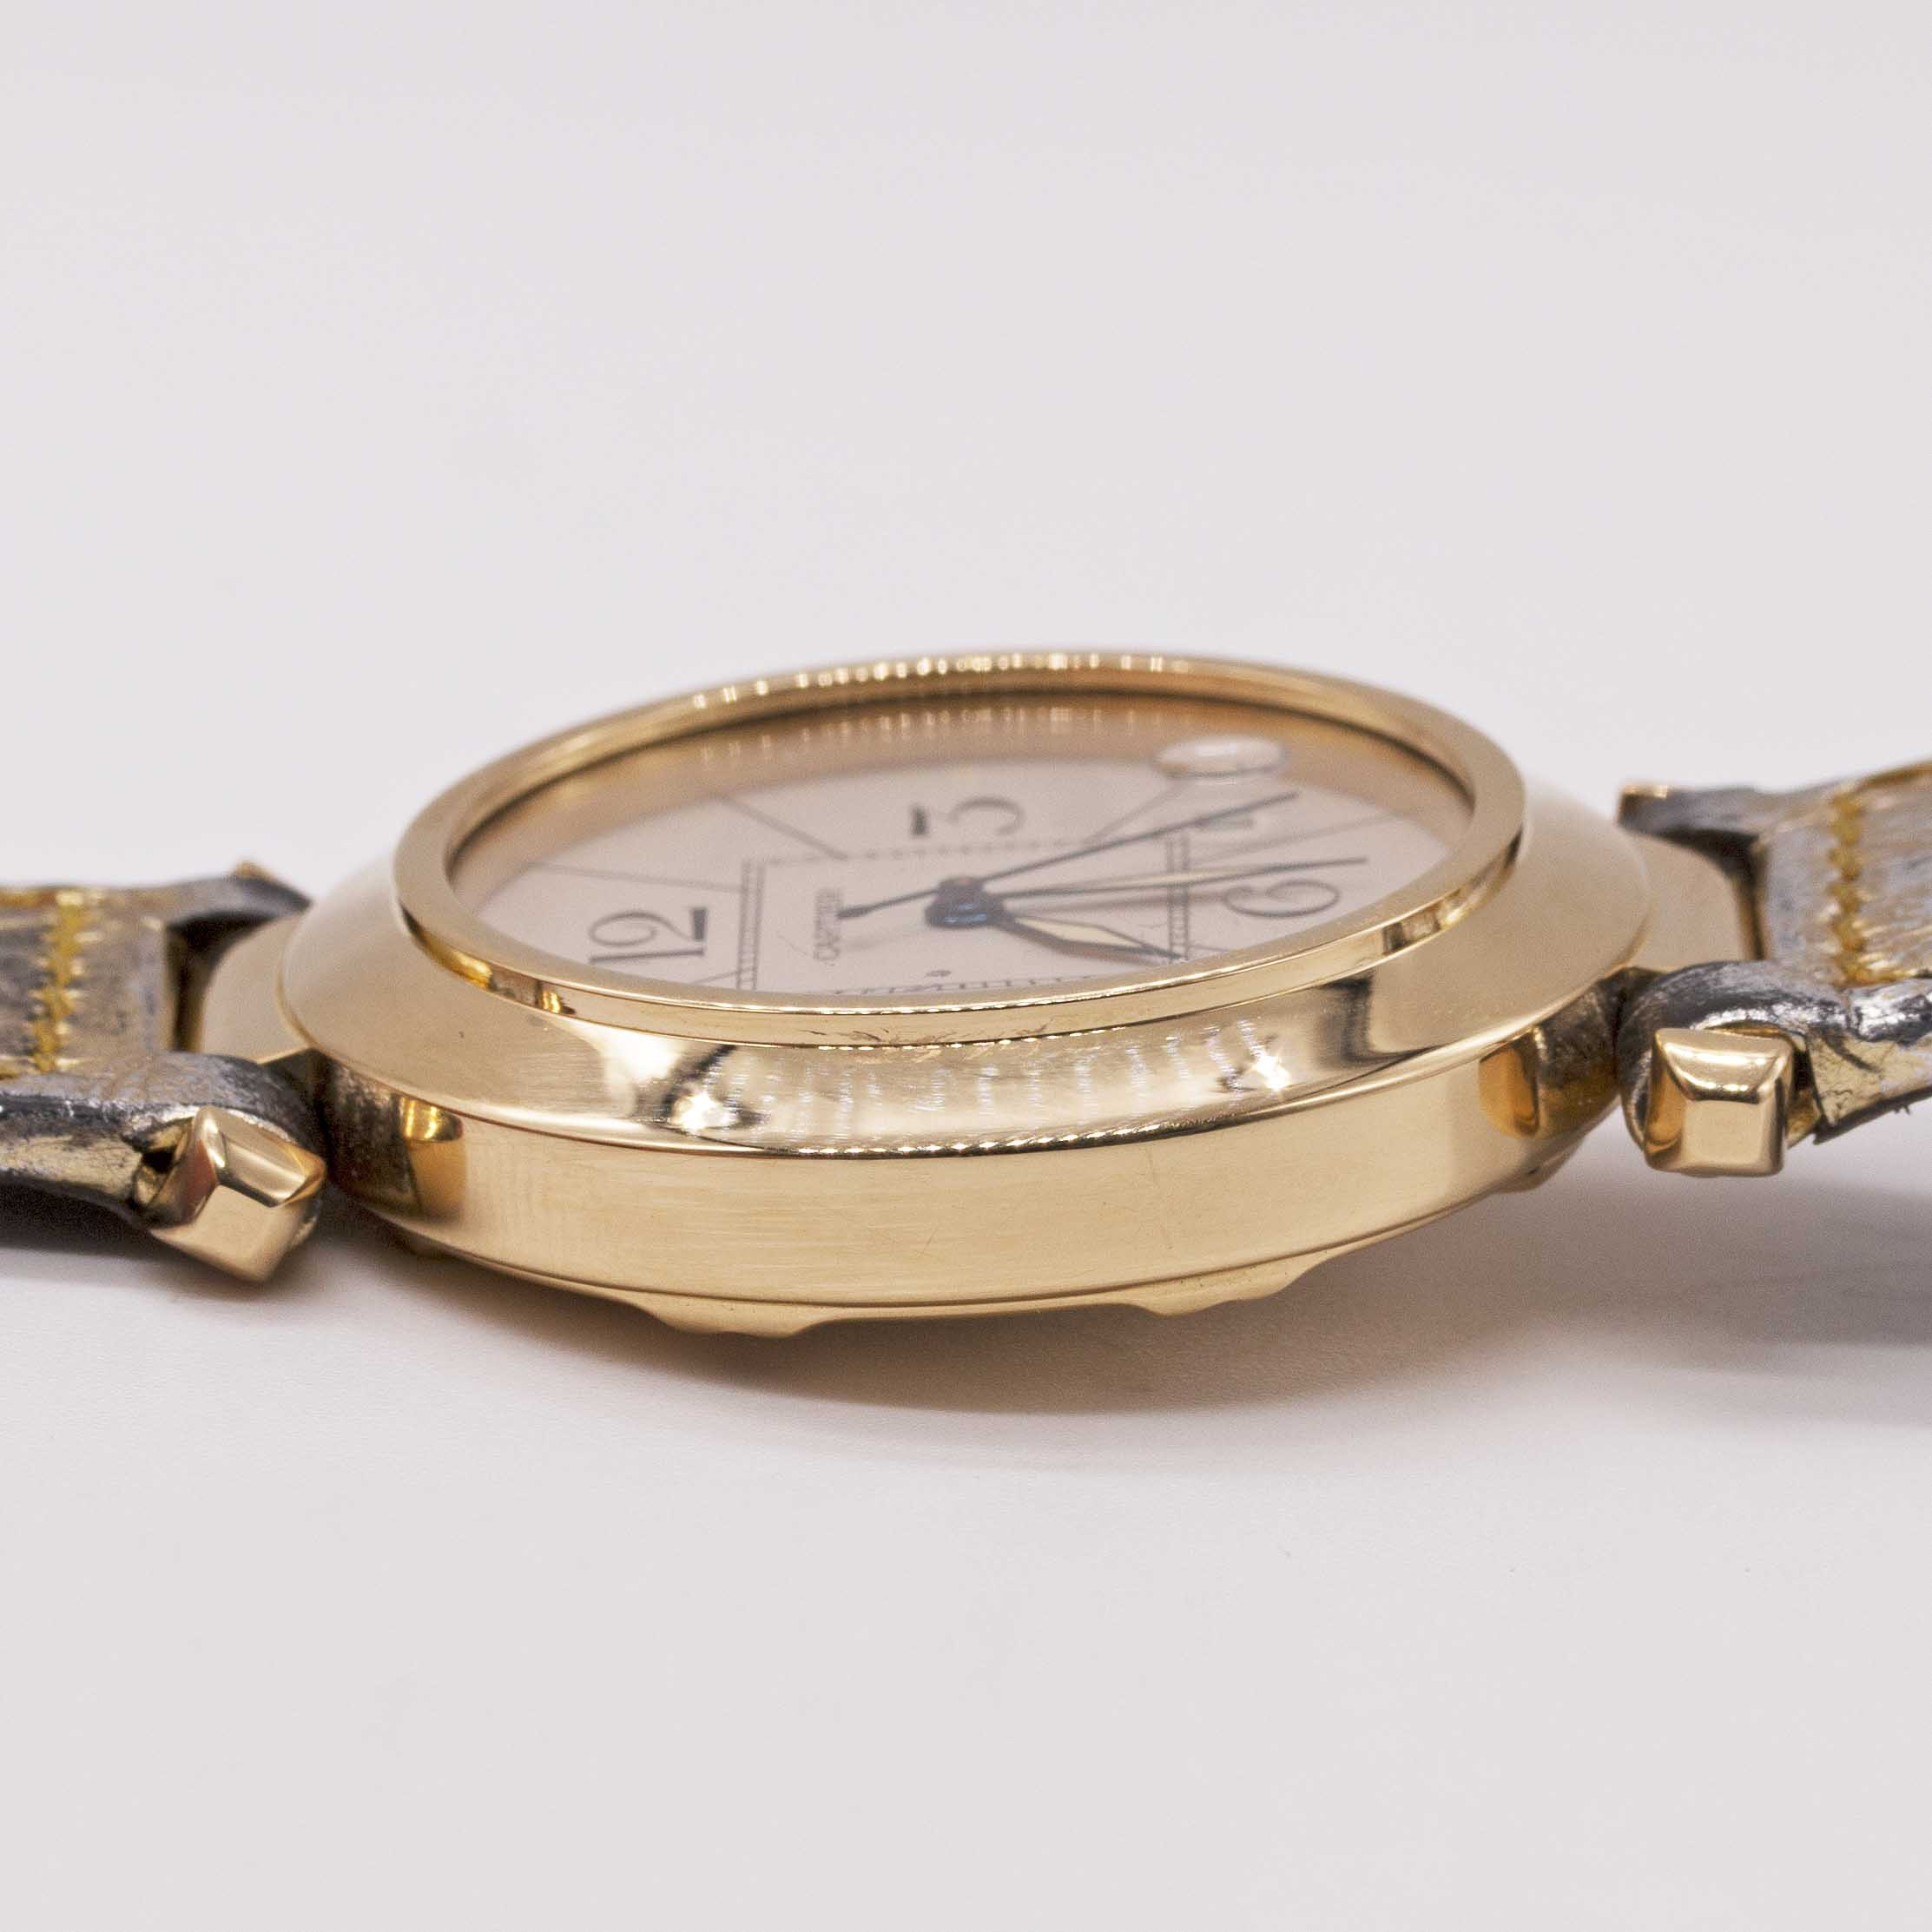 Lot 12 - A GENTLEMAN'S SIZE 18K SOLID GOLD CARTIER PASHA AUTOMATIC WRIST WATCH CIRCA 1990s, REF. 1989